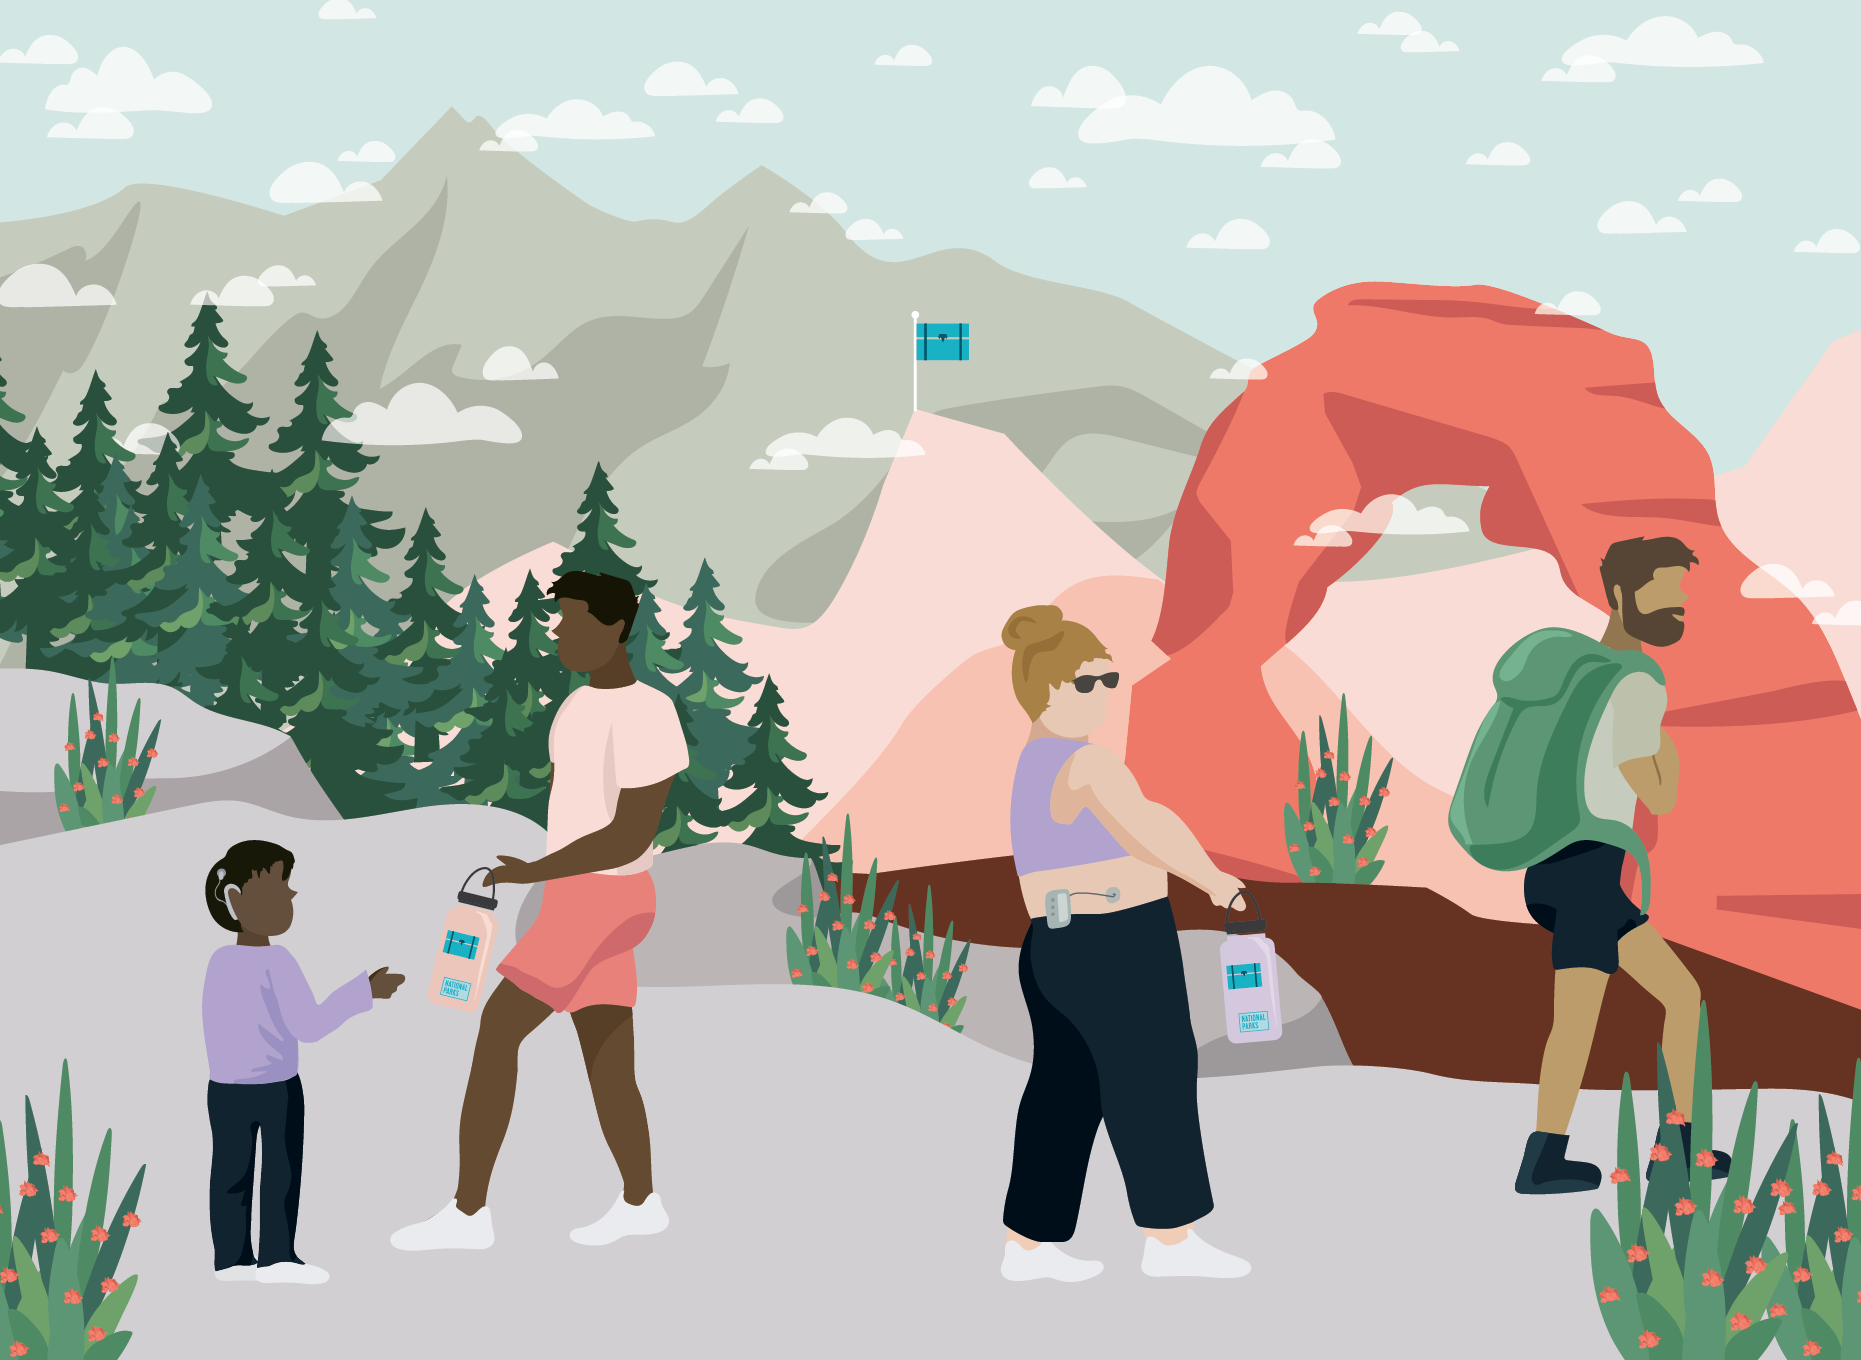 Four people in the foreground, one child with a hearing aid and one woman with an insulin pump. Wilderness in the background including stone arch, trees, and mountains. Illustration.